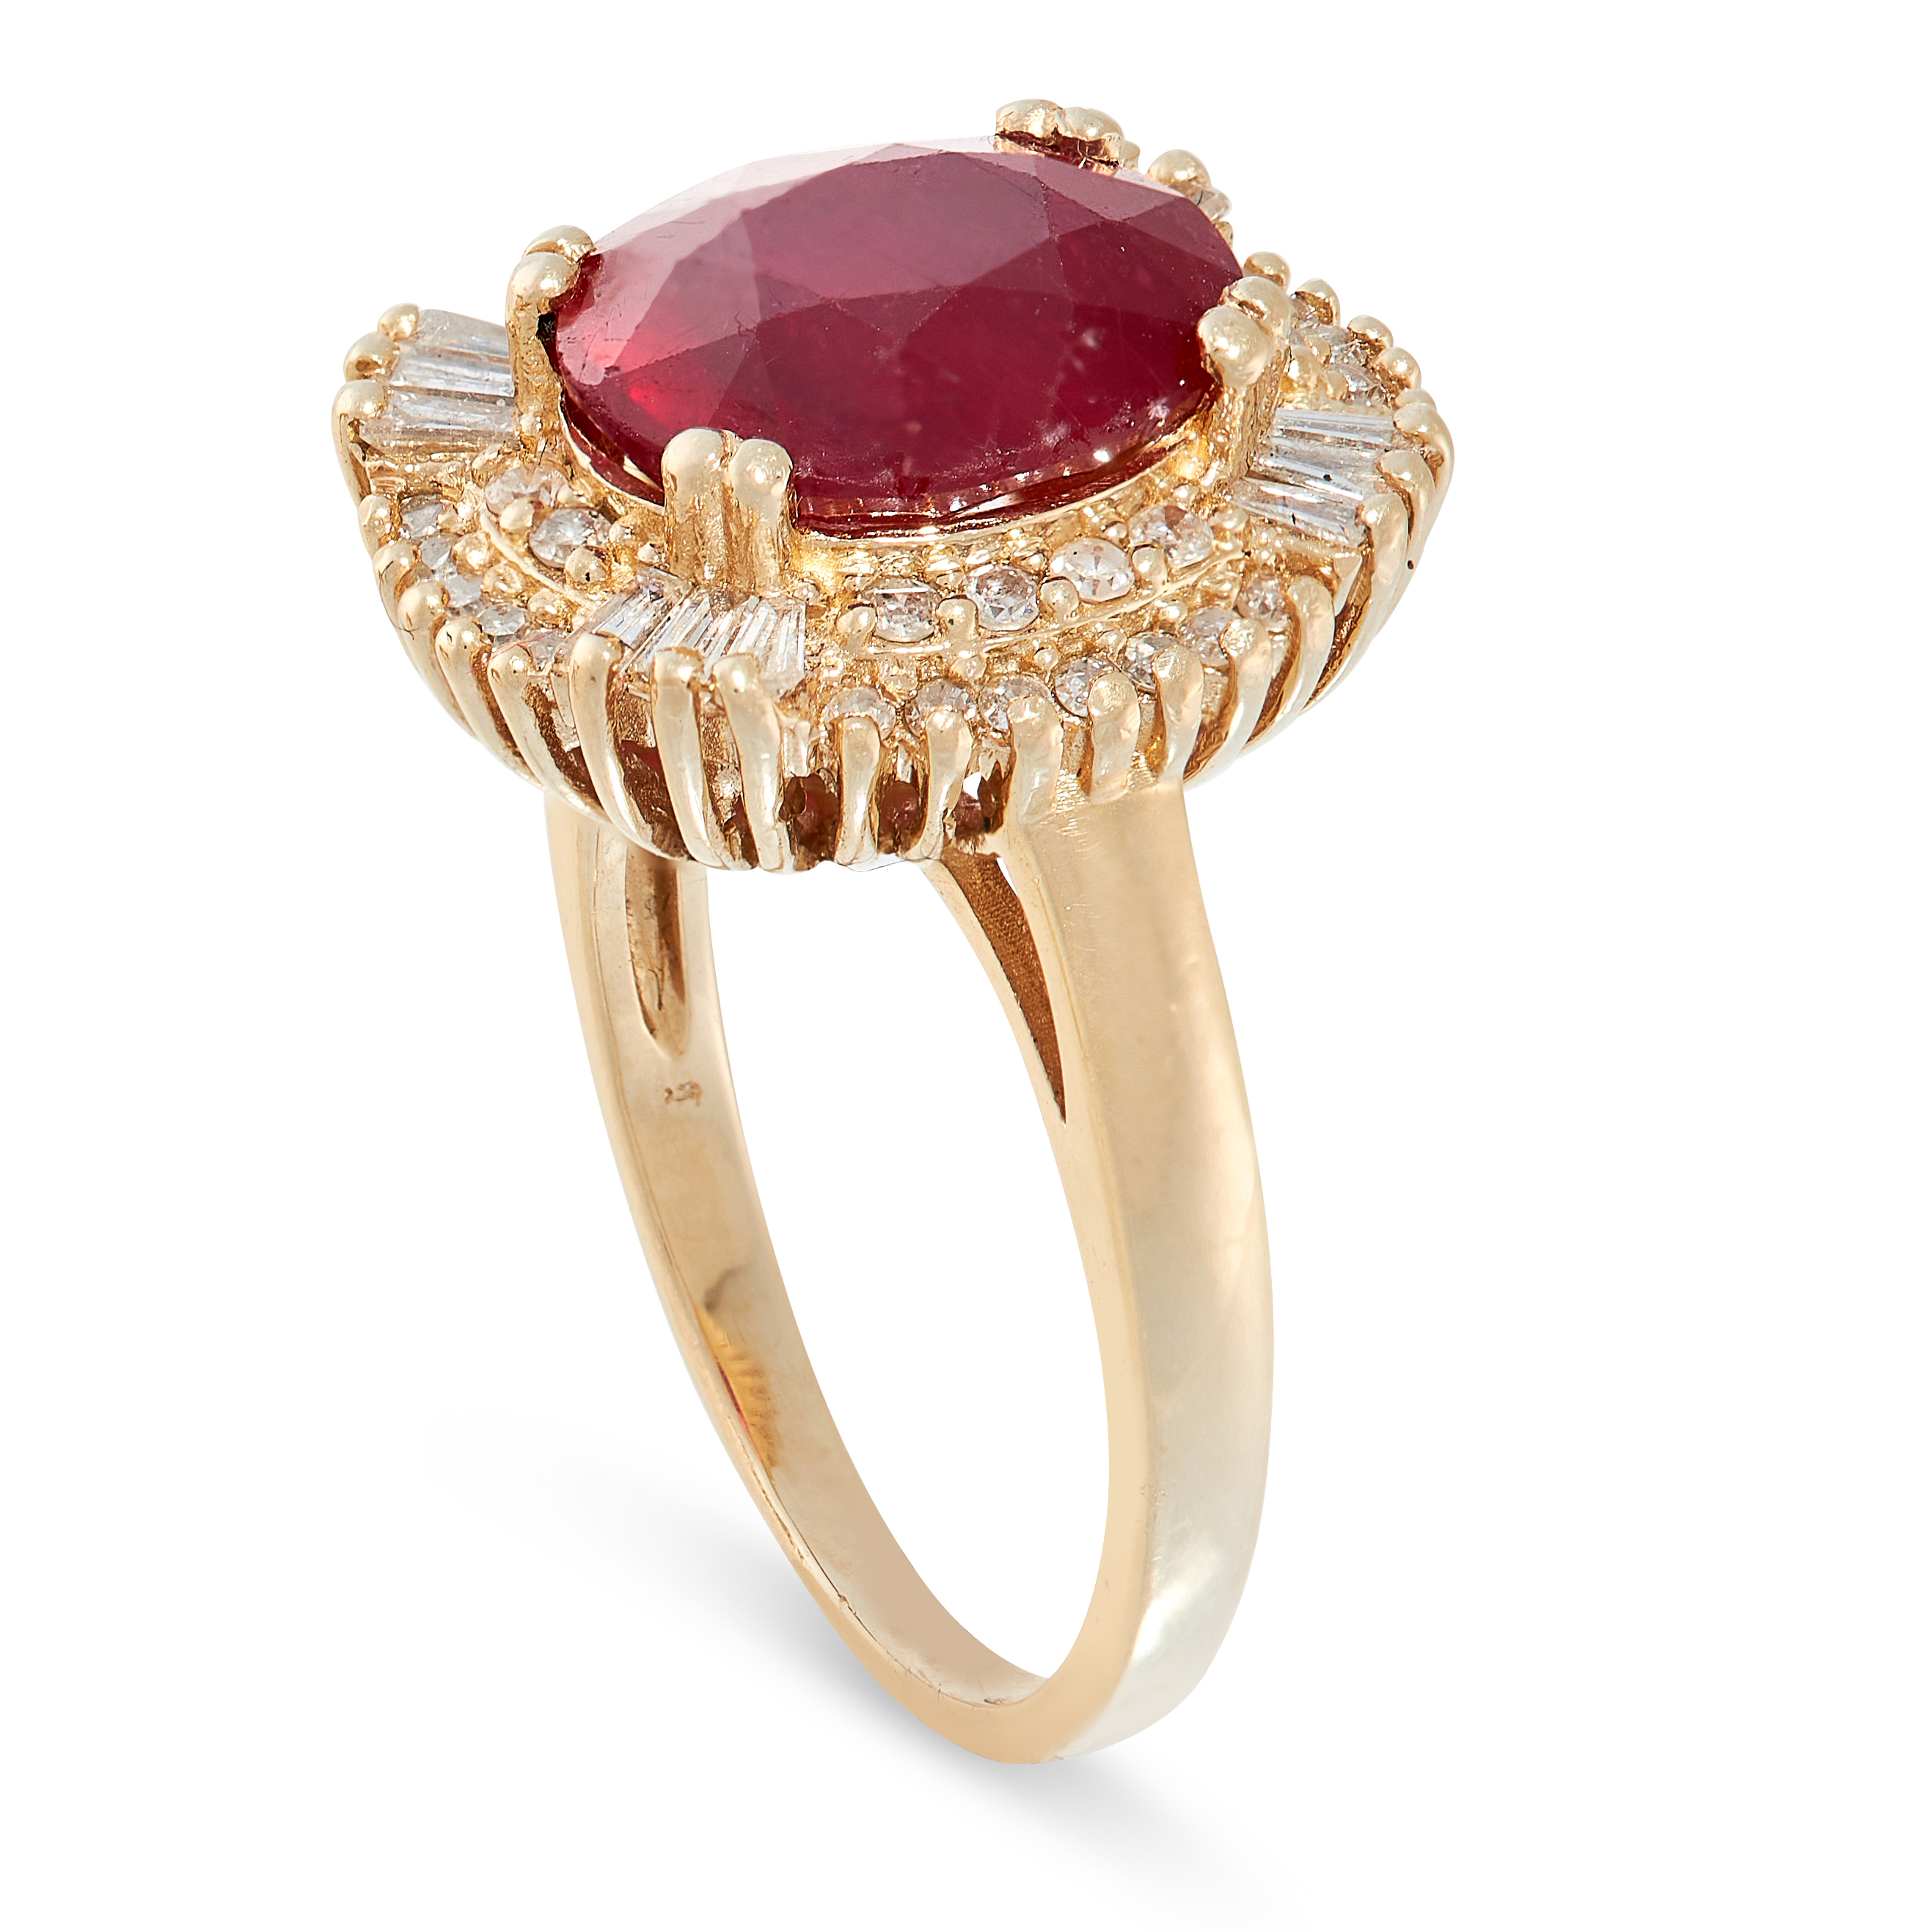 A RUBY AND DIAMOND RING in 14ct yellow gold, designed as a cluster, set with an oval cut ruby of 4. - Image 2 of 2